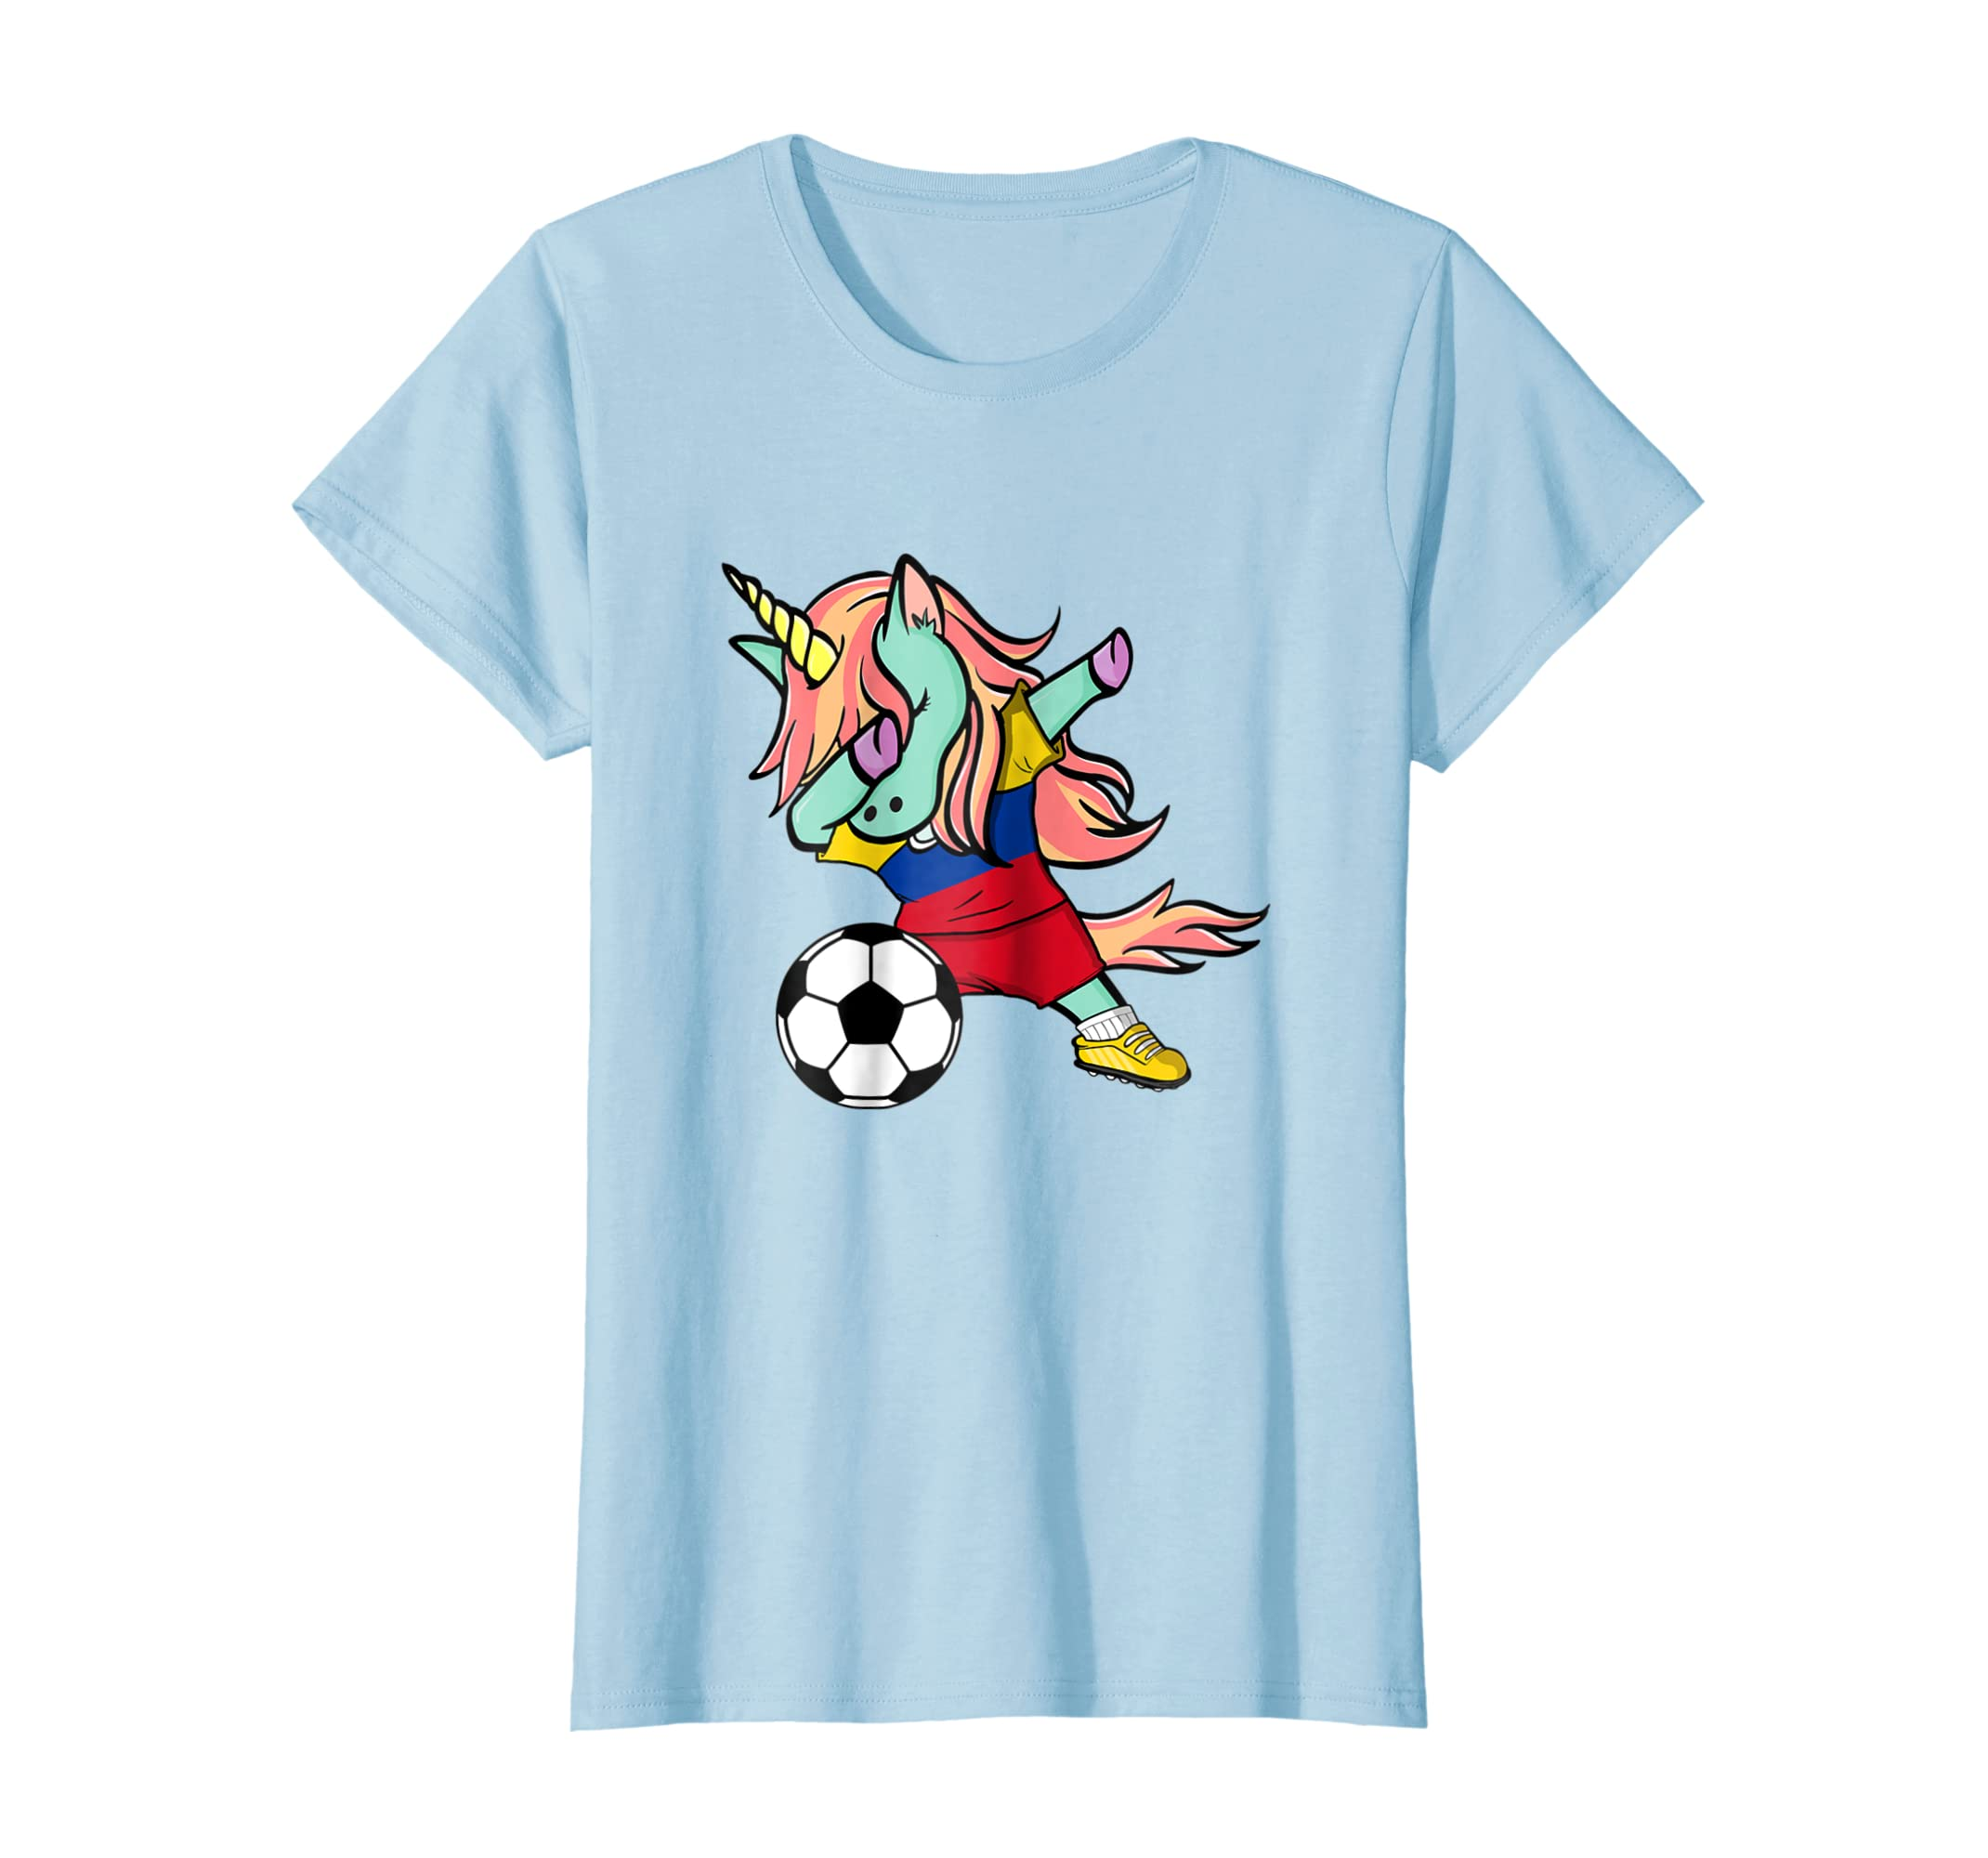 ab2effadd5a Amazon.com: Dabbing Unicorn Soccer Colombia Jersey Shirt 2018 Football:  Clothing